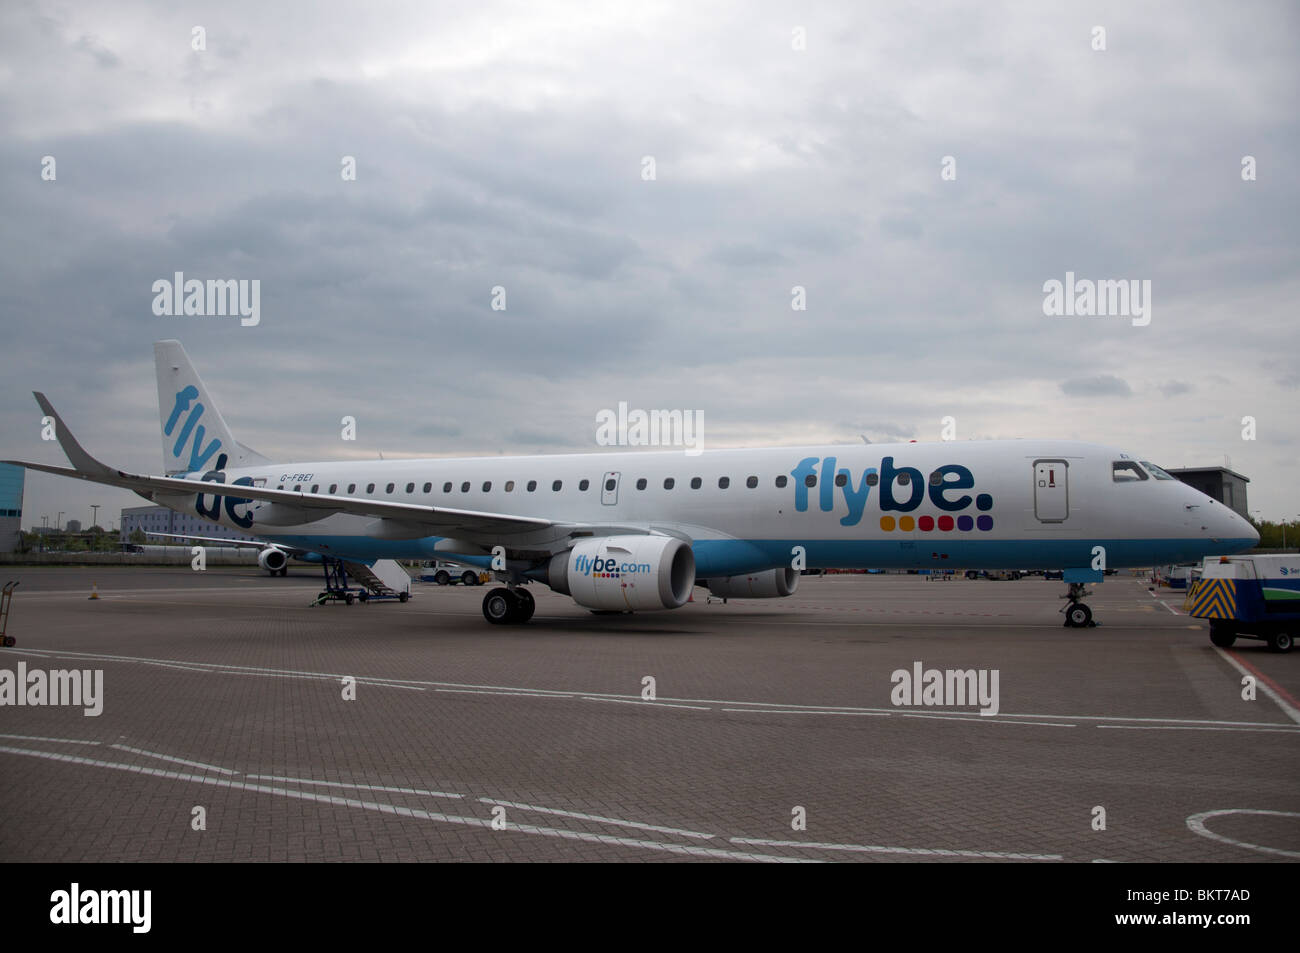 A flybe airplane parked at Southampton Airport. - Stock Image